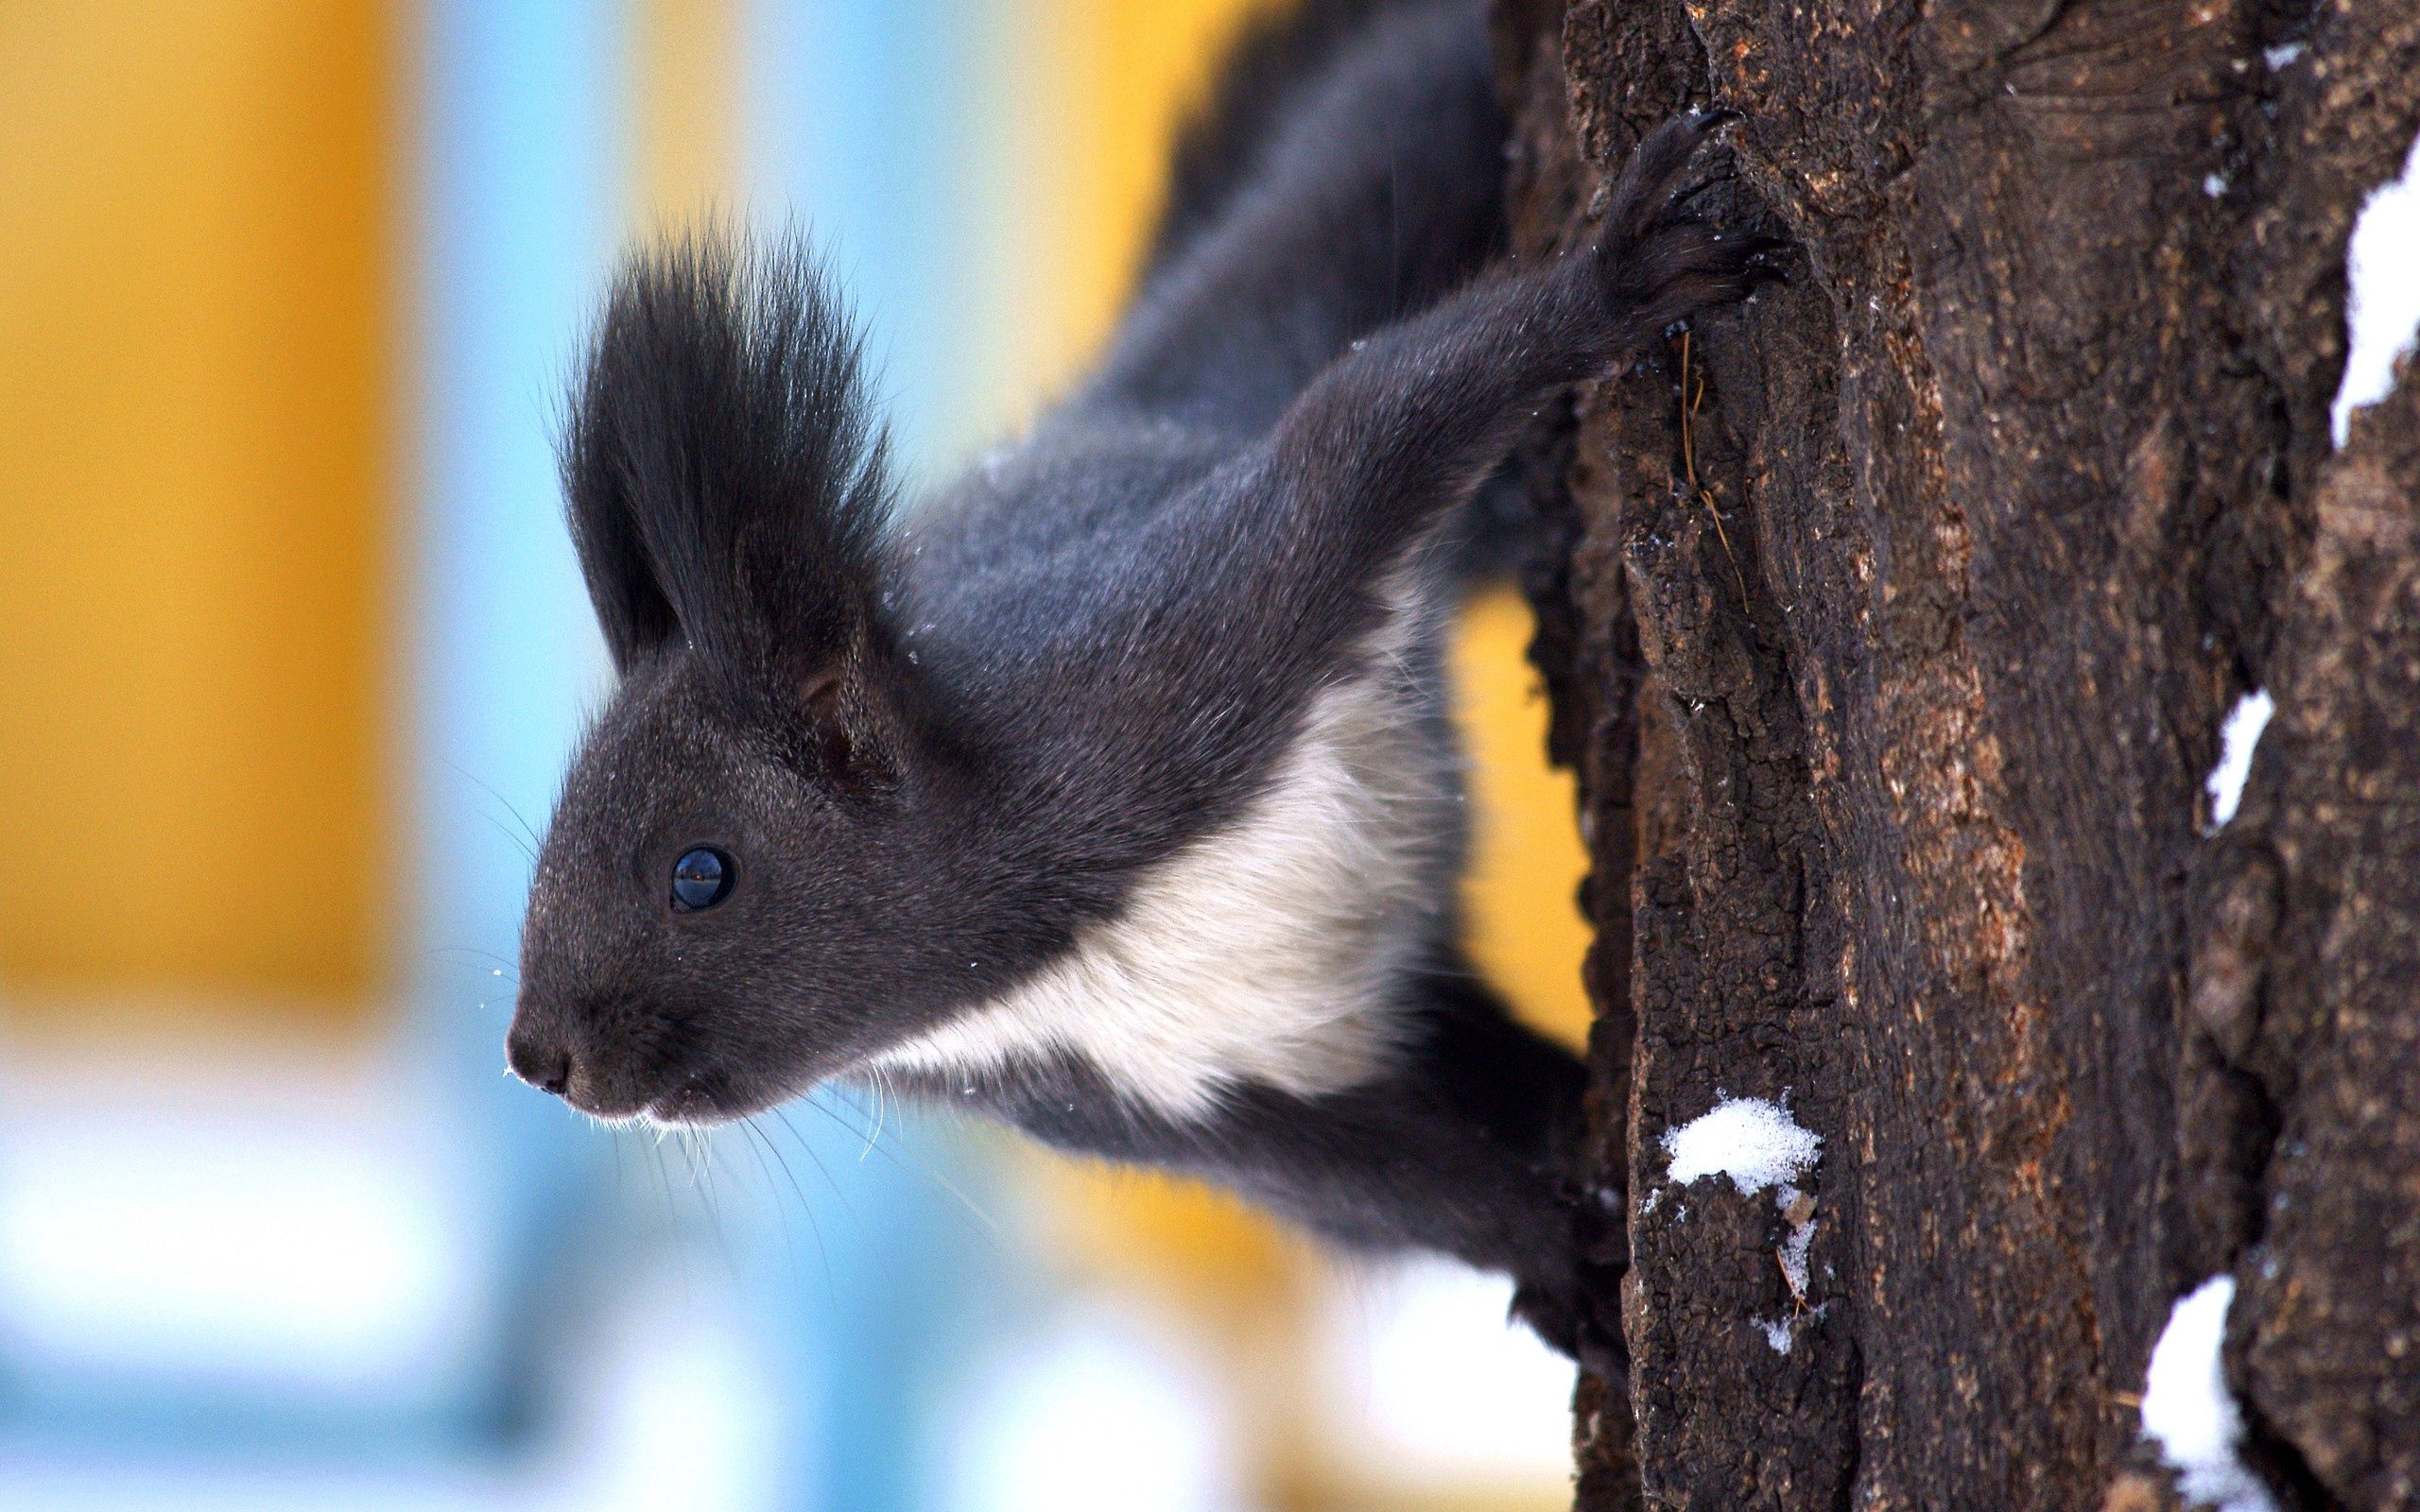 137198 download wallpaper Animals, Squirrel, Wood, Tree, Snow, Crawl screensavers and pictures for free